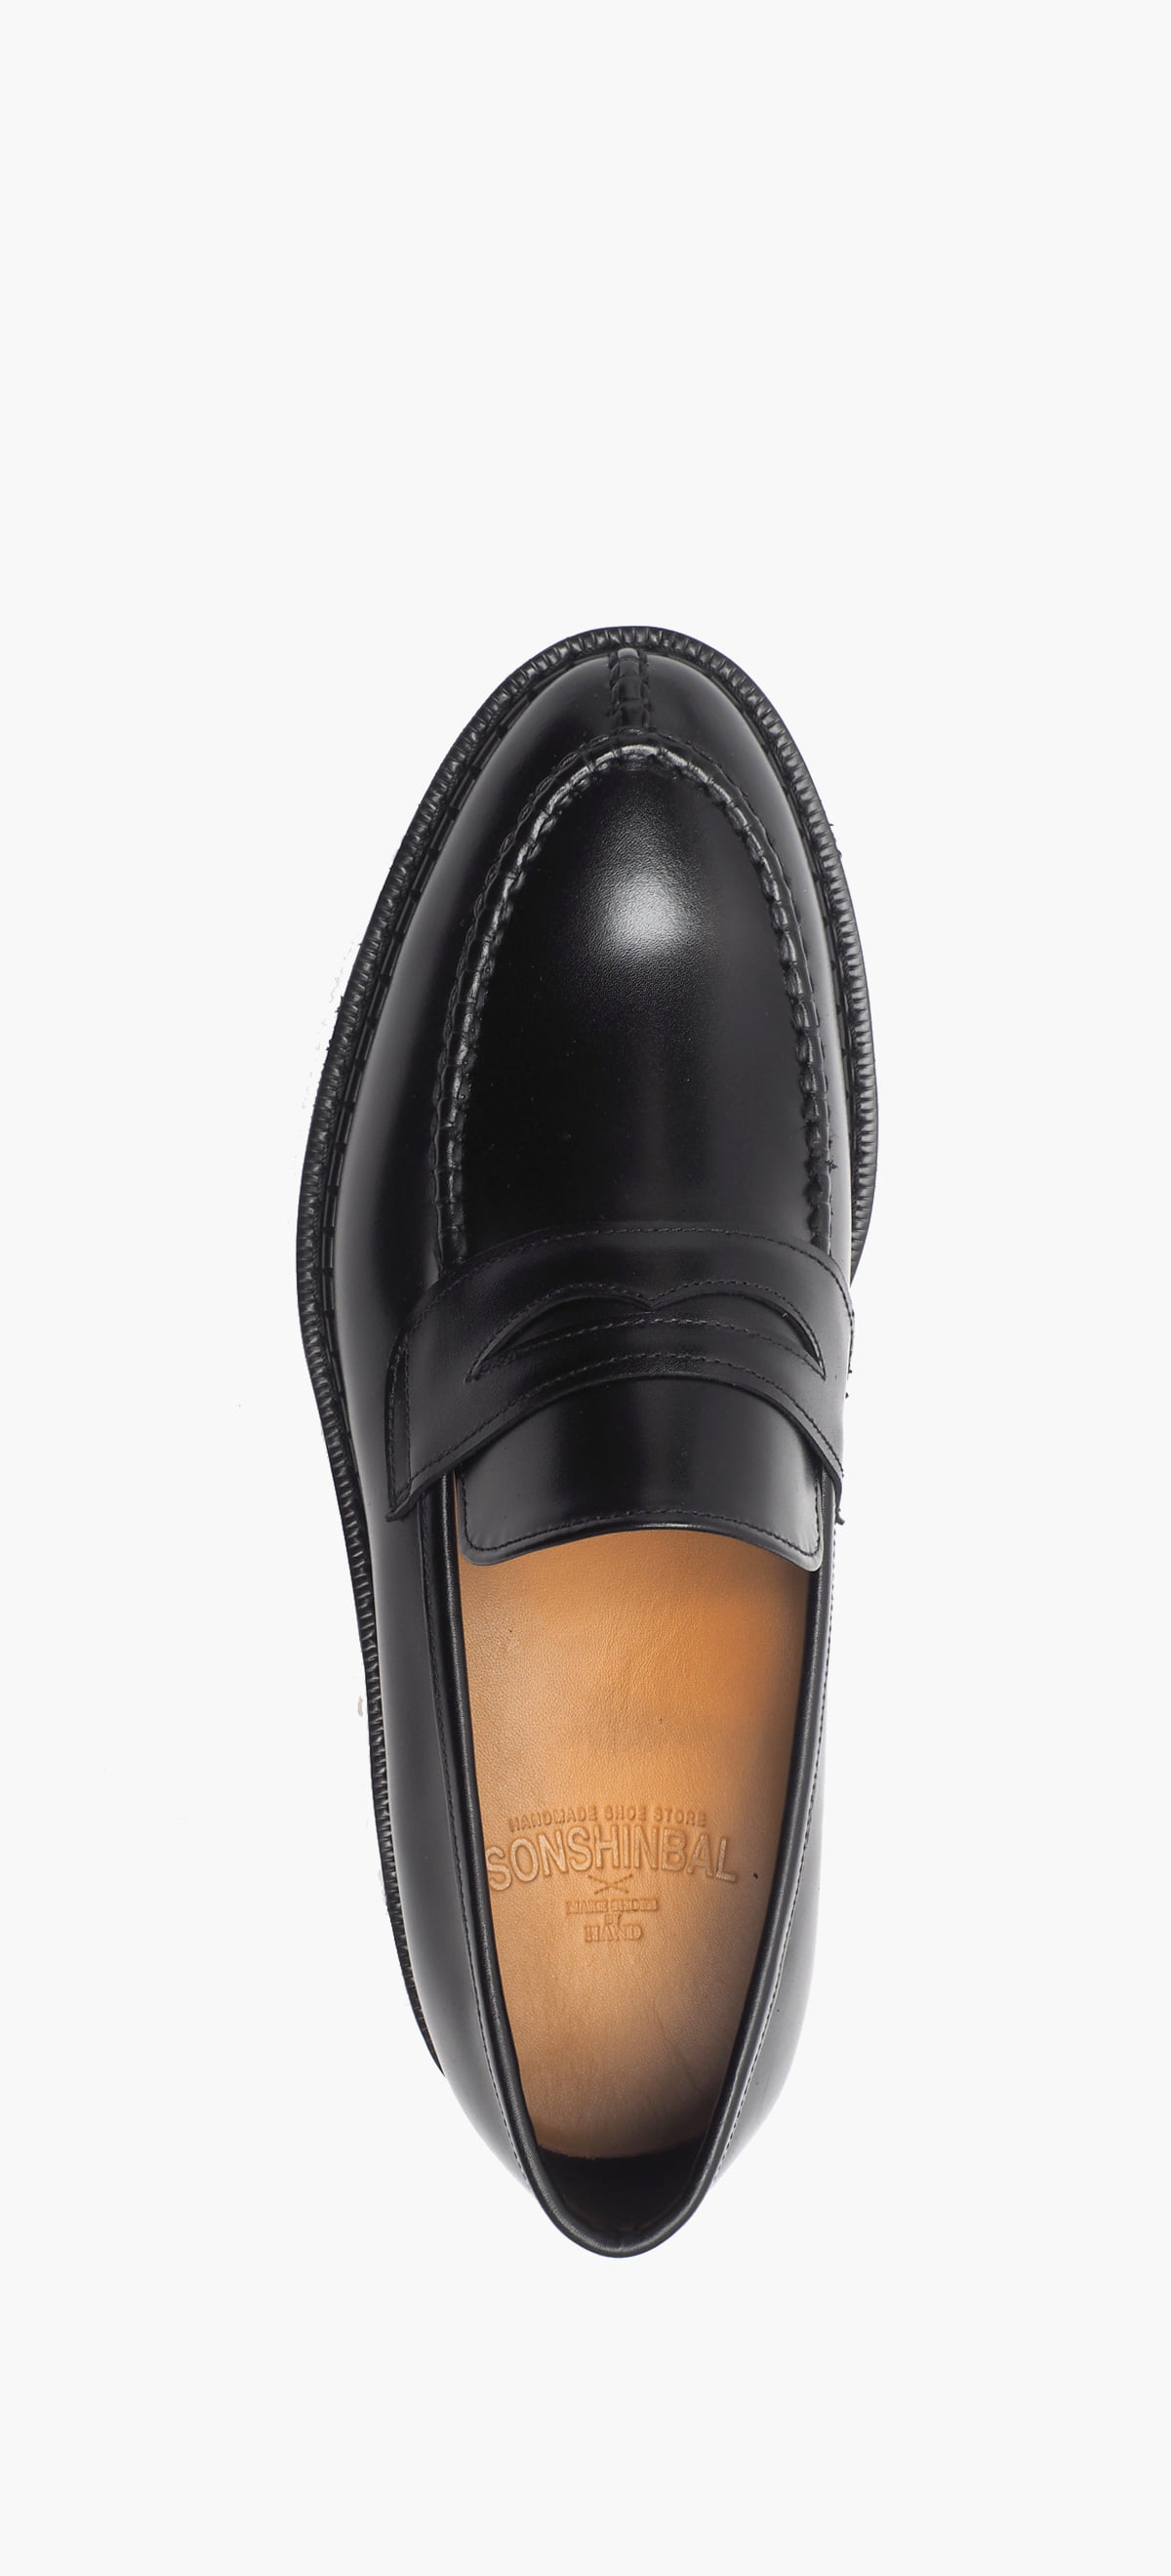 Penny Loafer 2052-02 Black Kip